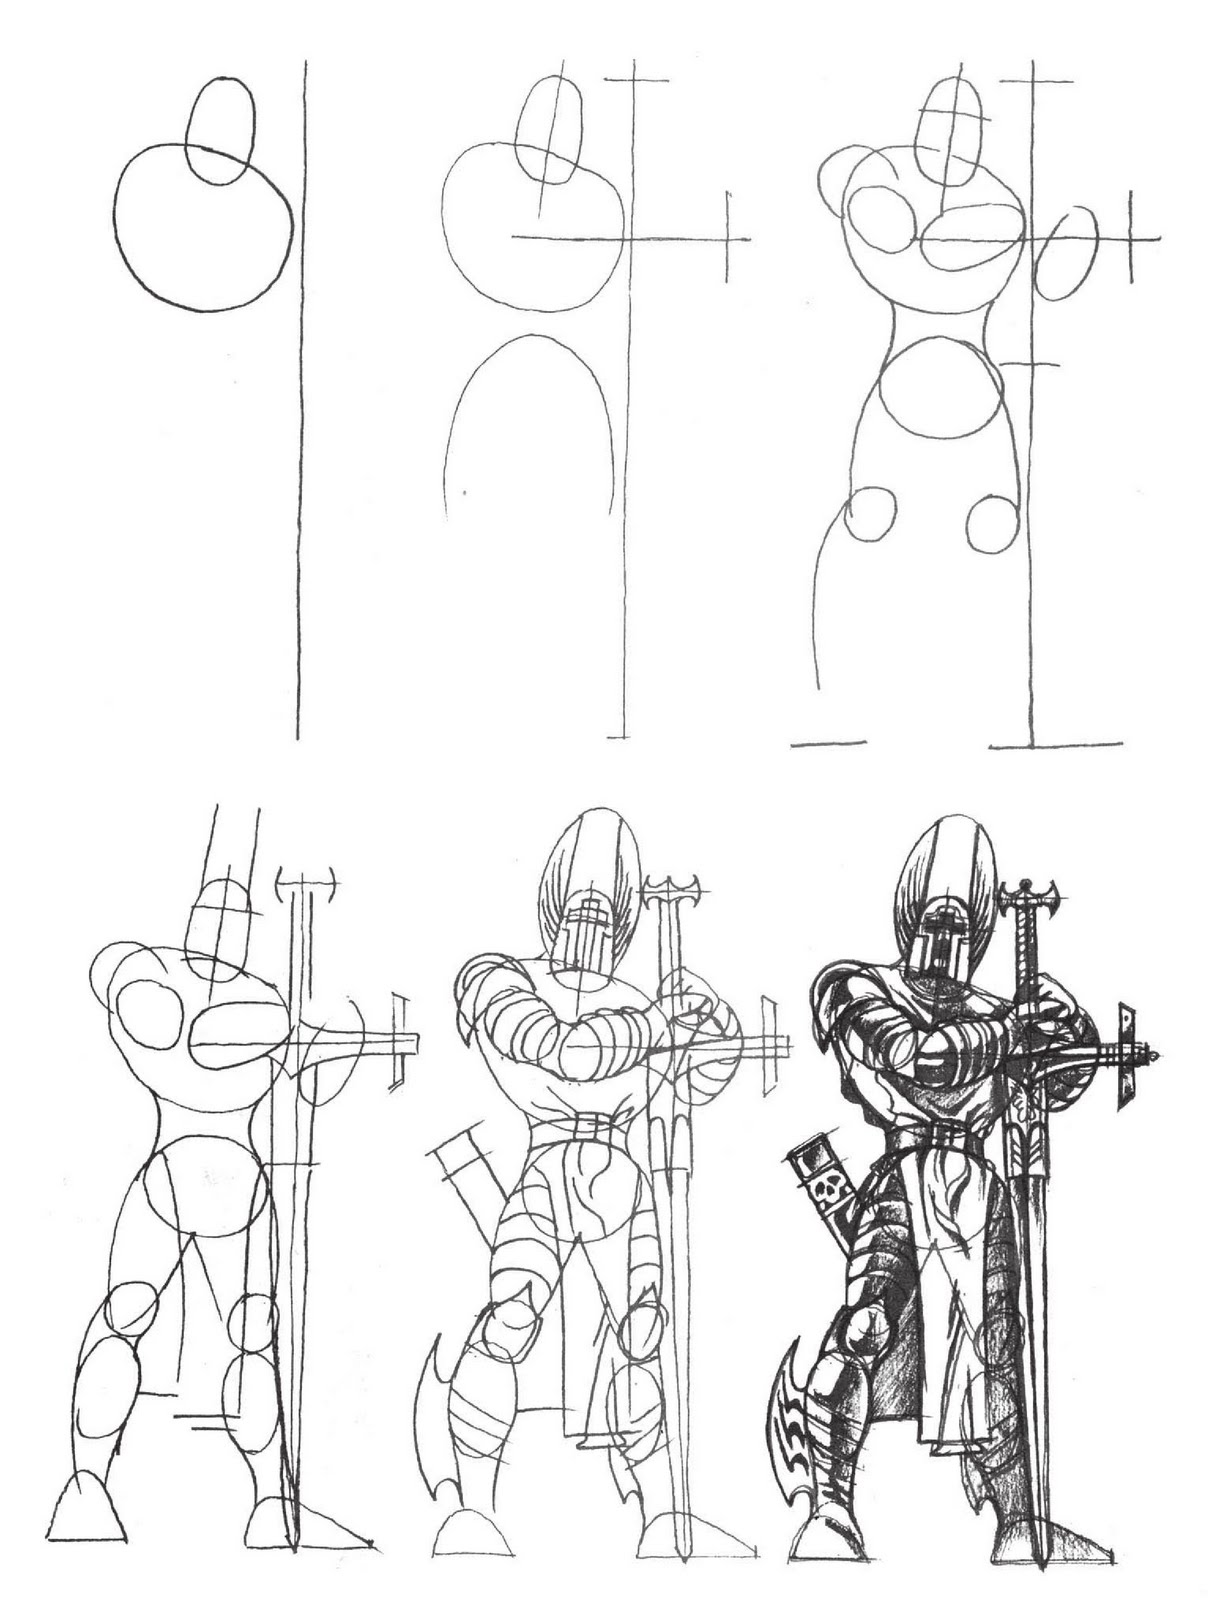 how to draw knights fighting knight lineart sample by padisio on deviantart knights draw fighting how to